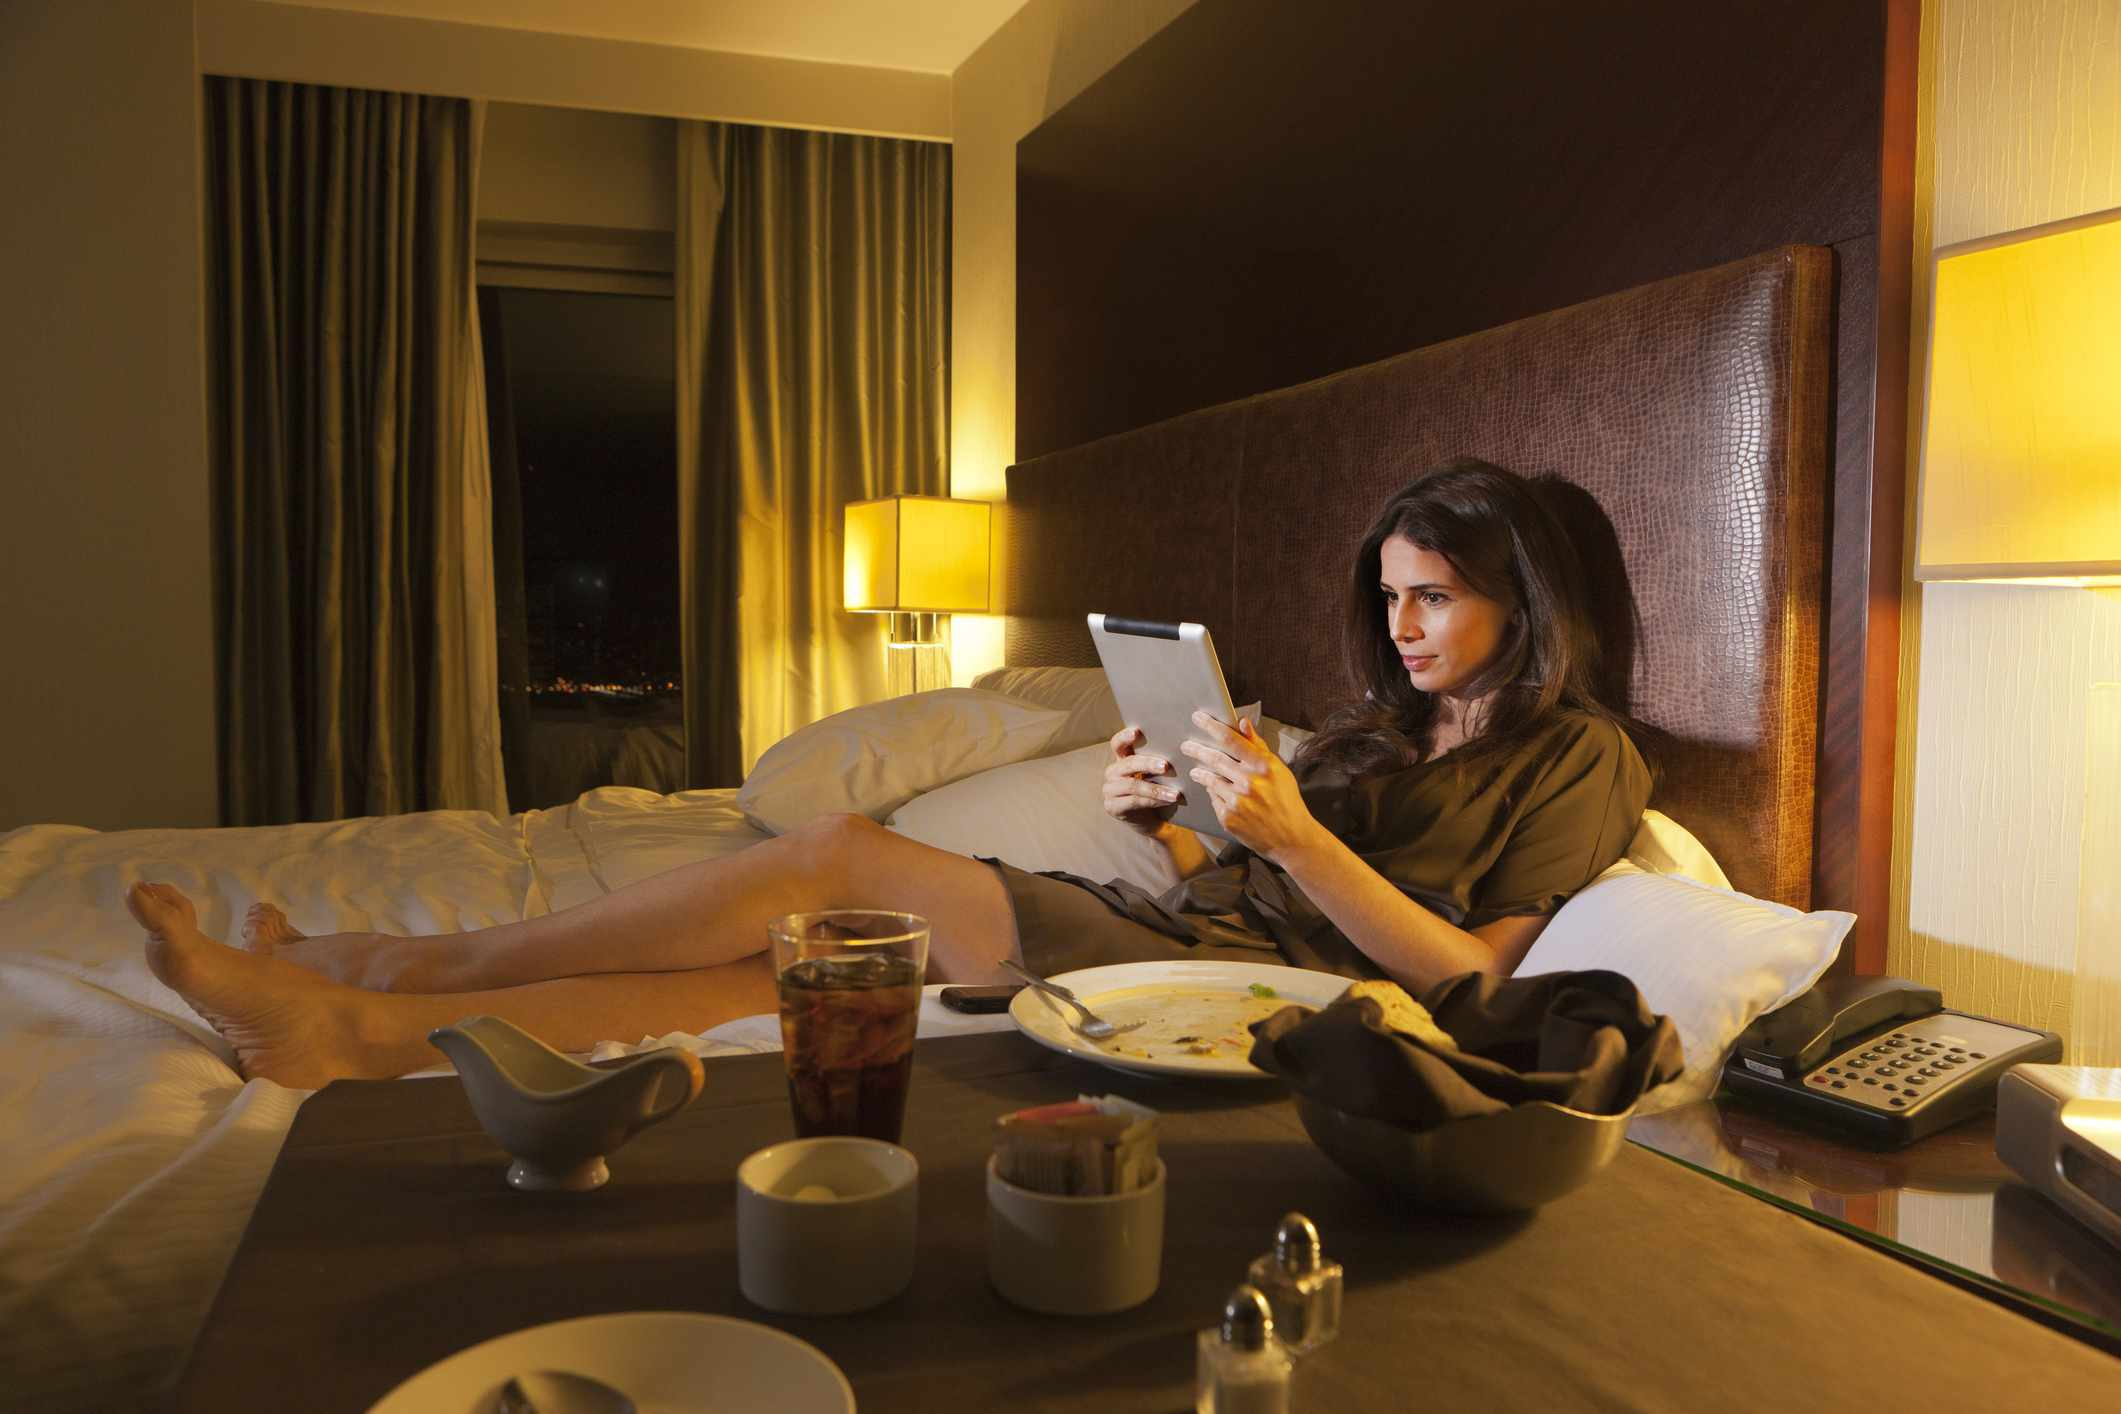 Woman reading digital tablet in bed